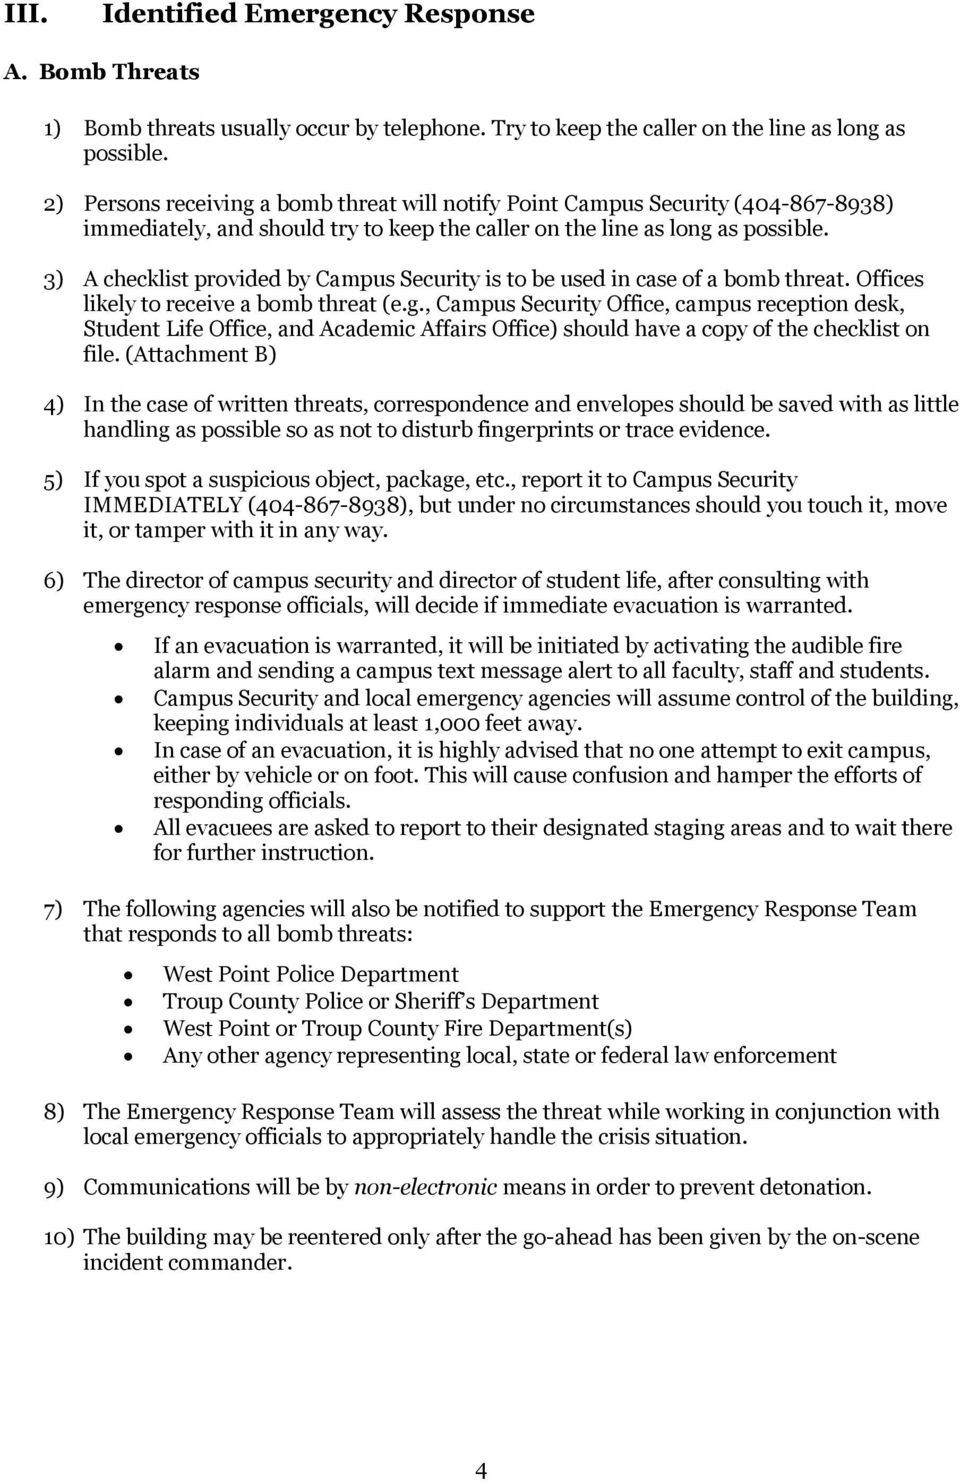 3) A checklist provided by Campus Security is to be used in case of a bomb threat. Offices likely to receive a bomb threat (e.g.